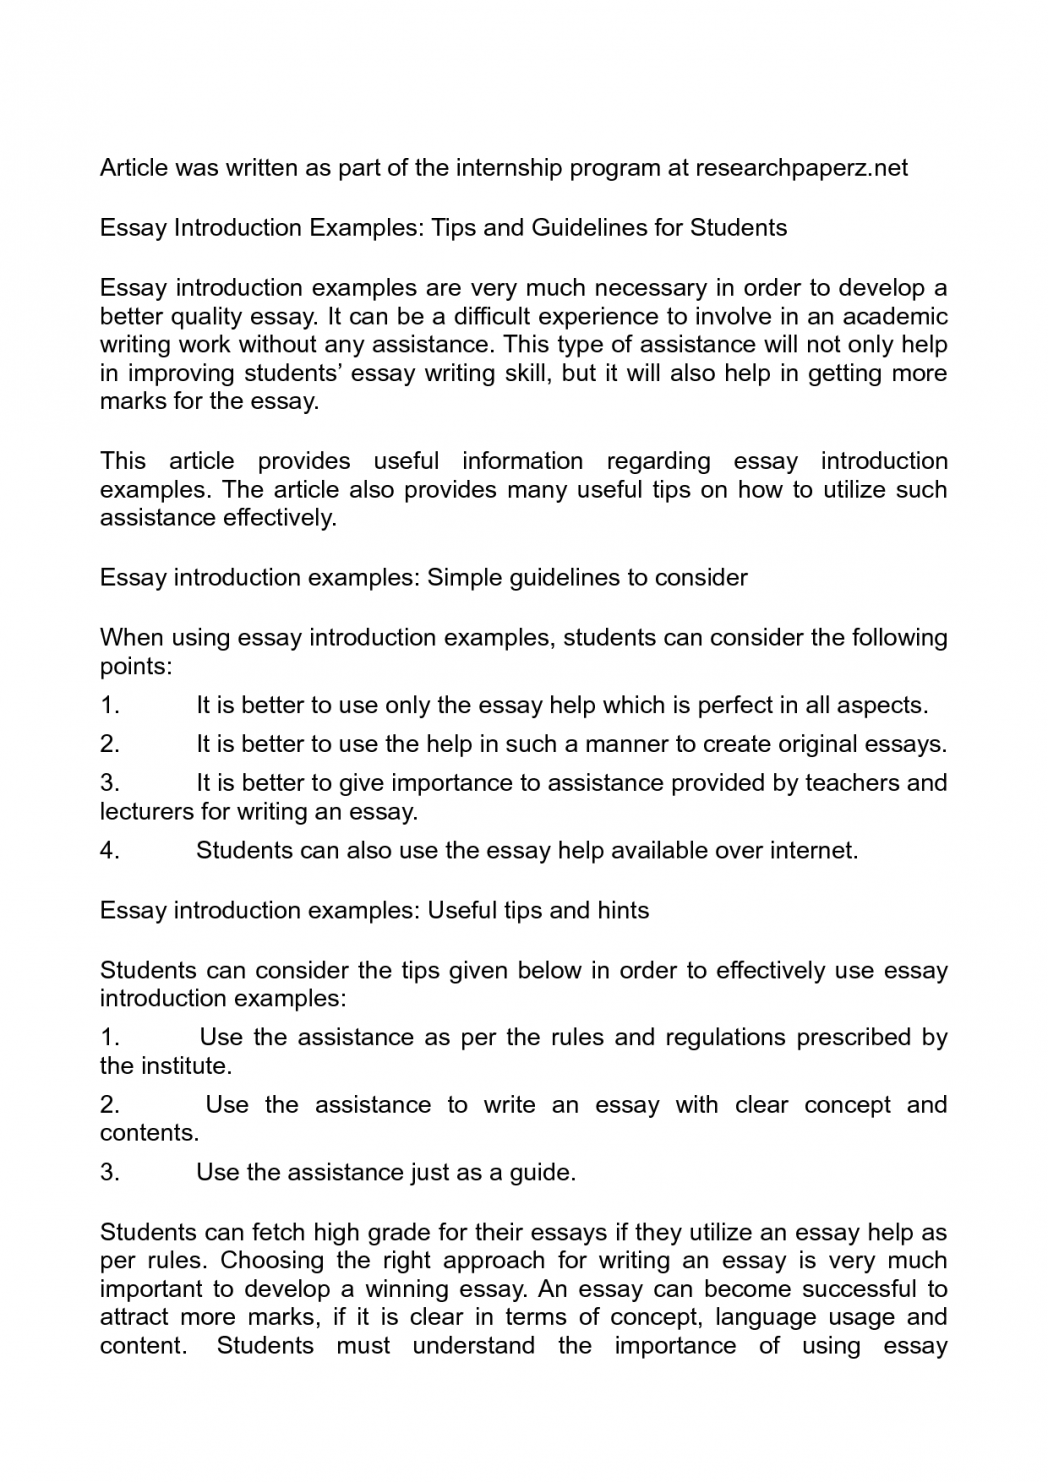 015 Quality Essay Example Writing Intro Introduction To An University Books Eyx5t Help Competition Format Examples Guide Advice Course Service Uk Excellent Improvement In Hindi Tamil Marathi Full